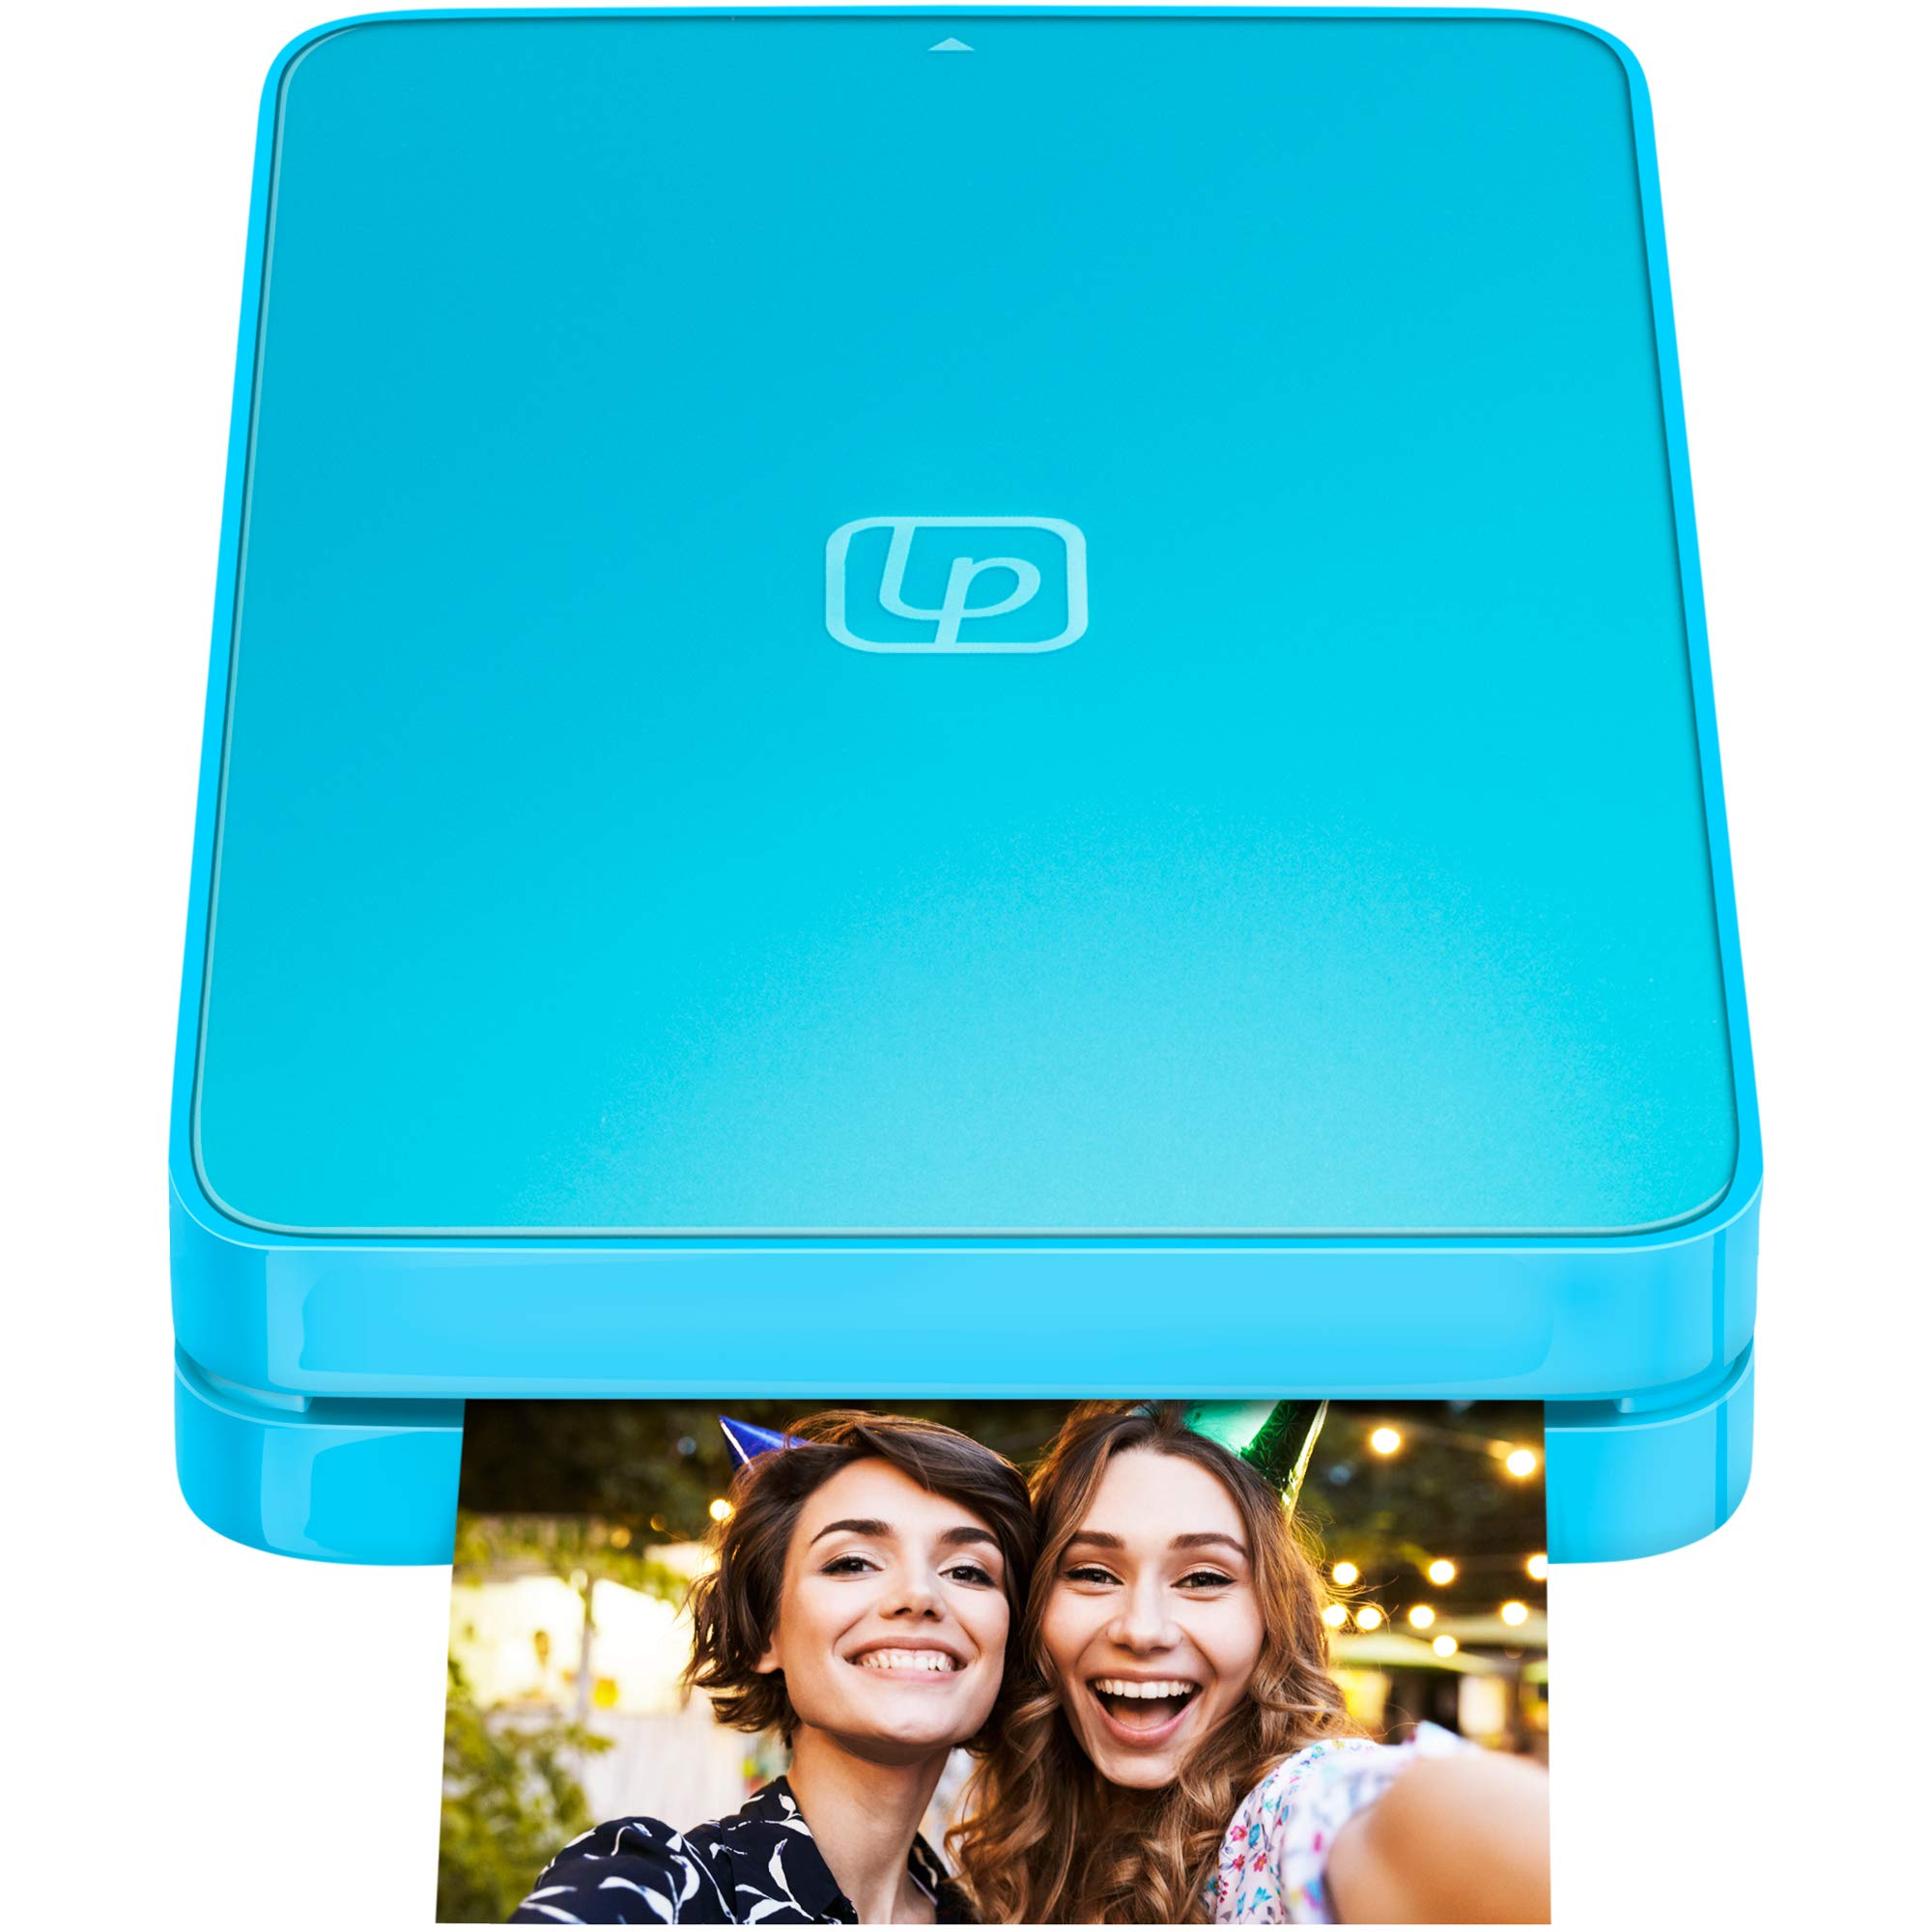 Lifeprint 2x3 Portable Photo and Video Printer for iPhone and Android. Make Your Photos Come to Life w/Augmented Reality - Blue